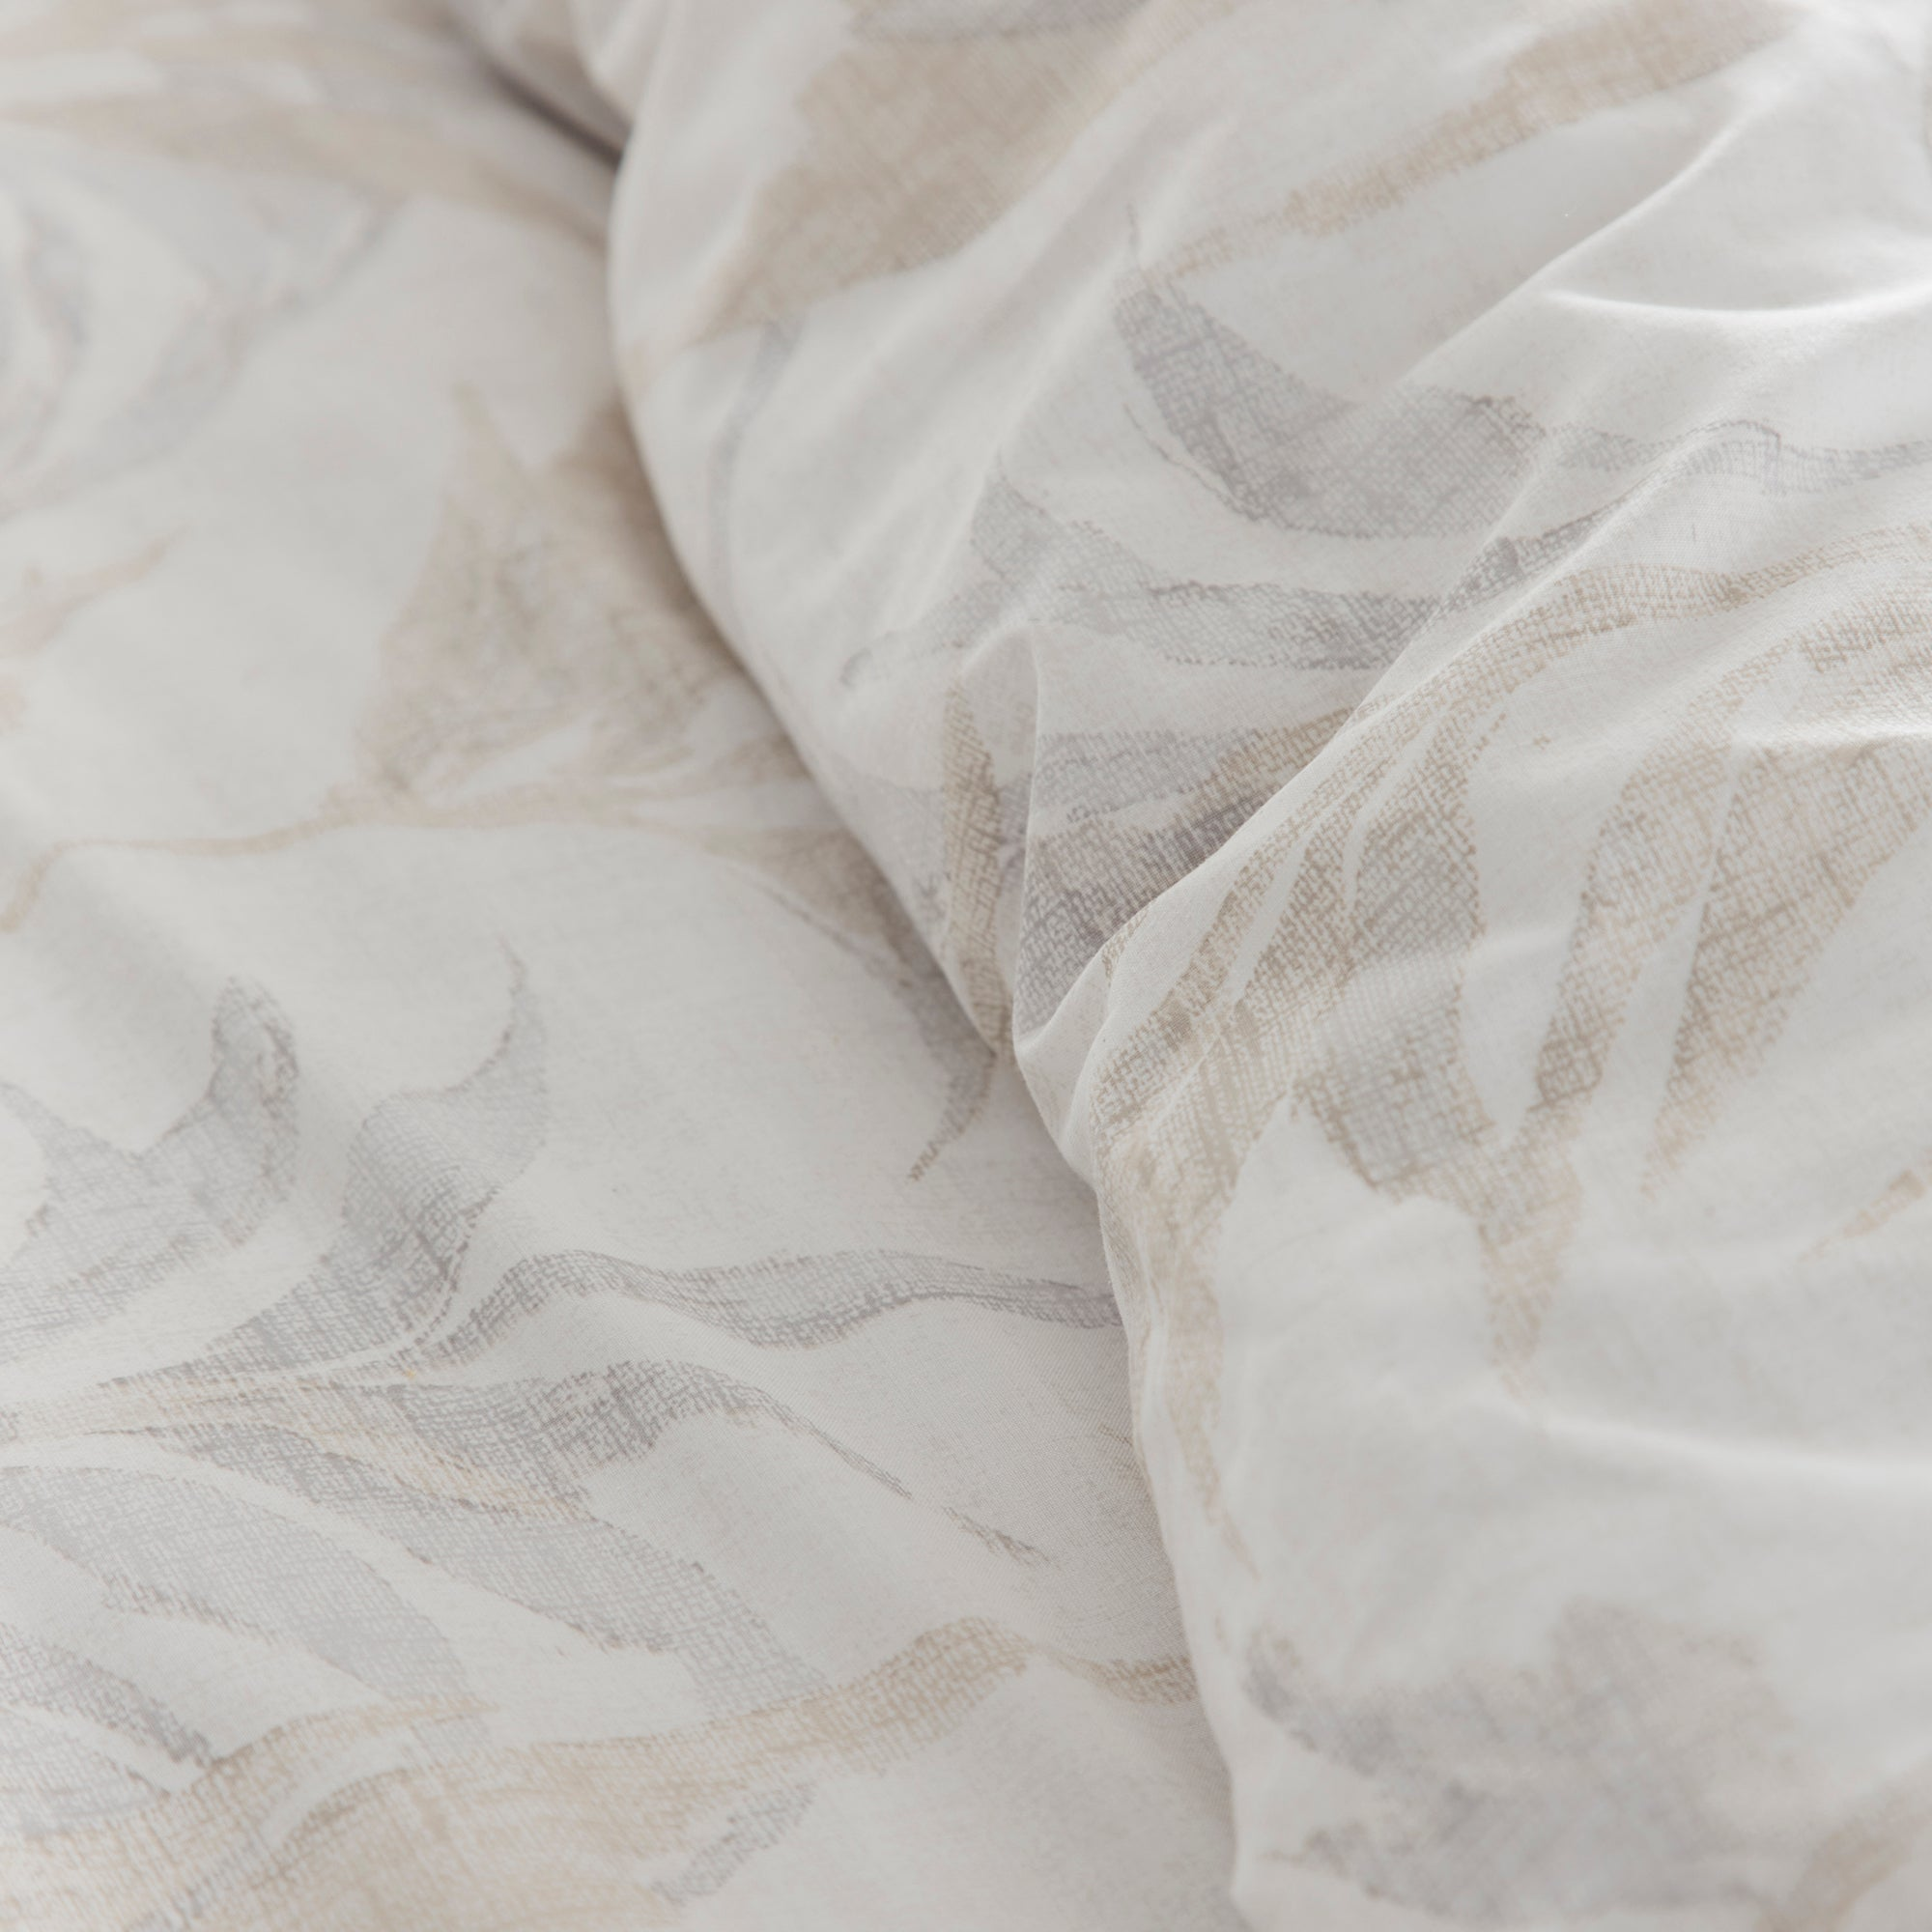 Pampas Grass - Eco-Friendly Duvet Cover Set in Natural by Drift Home